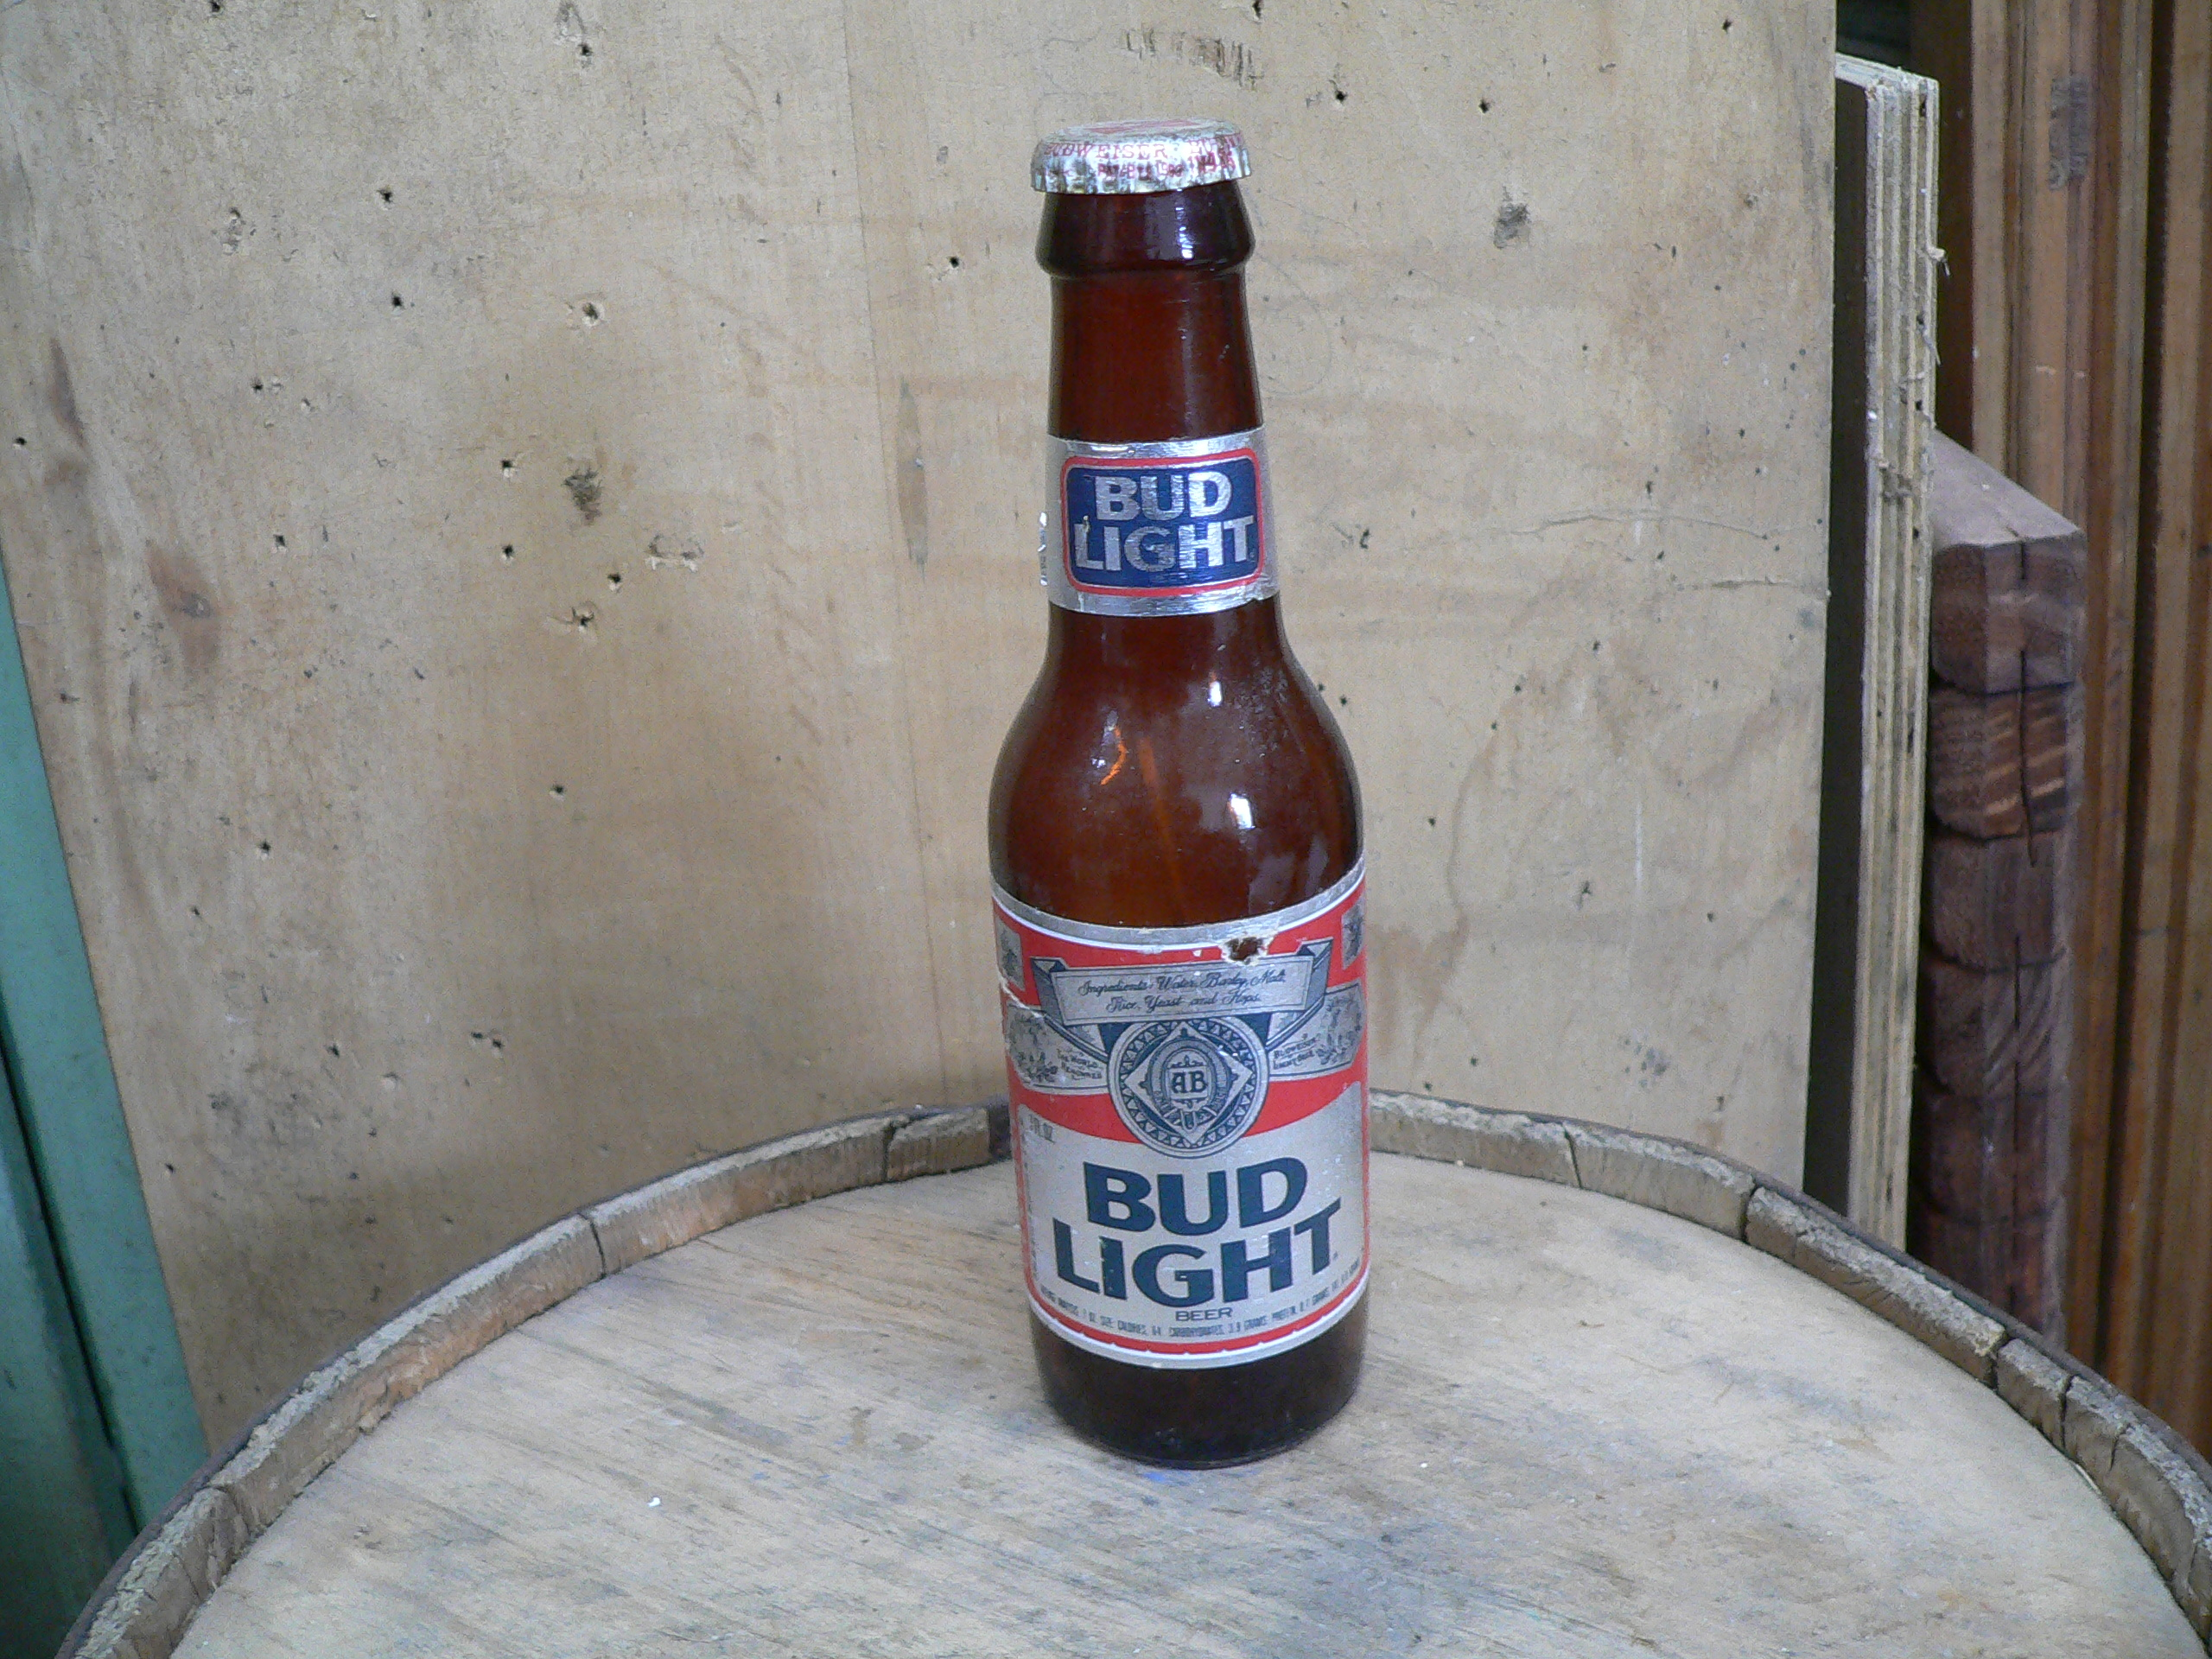 Bouteille bud light # 5602.3